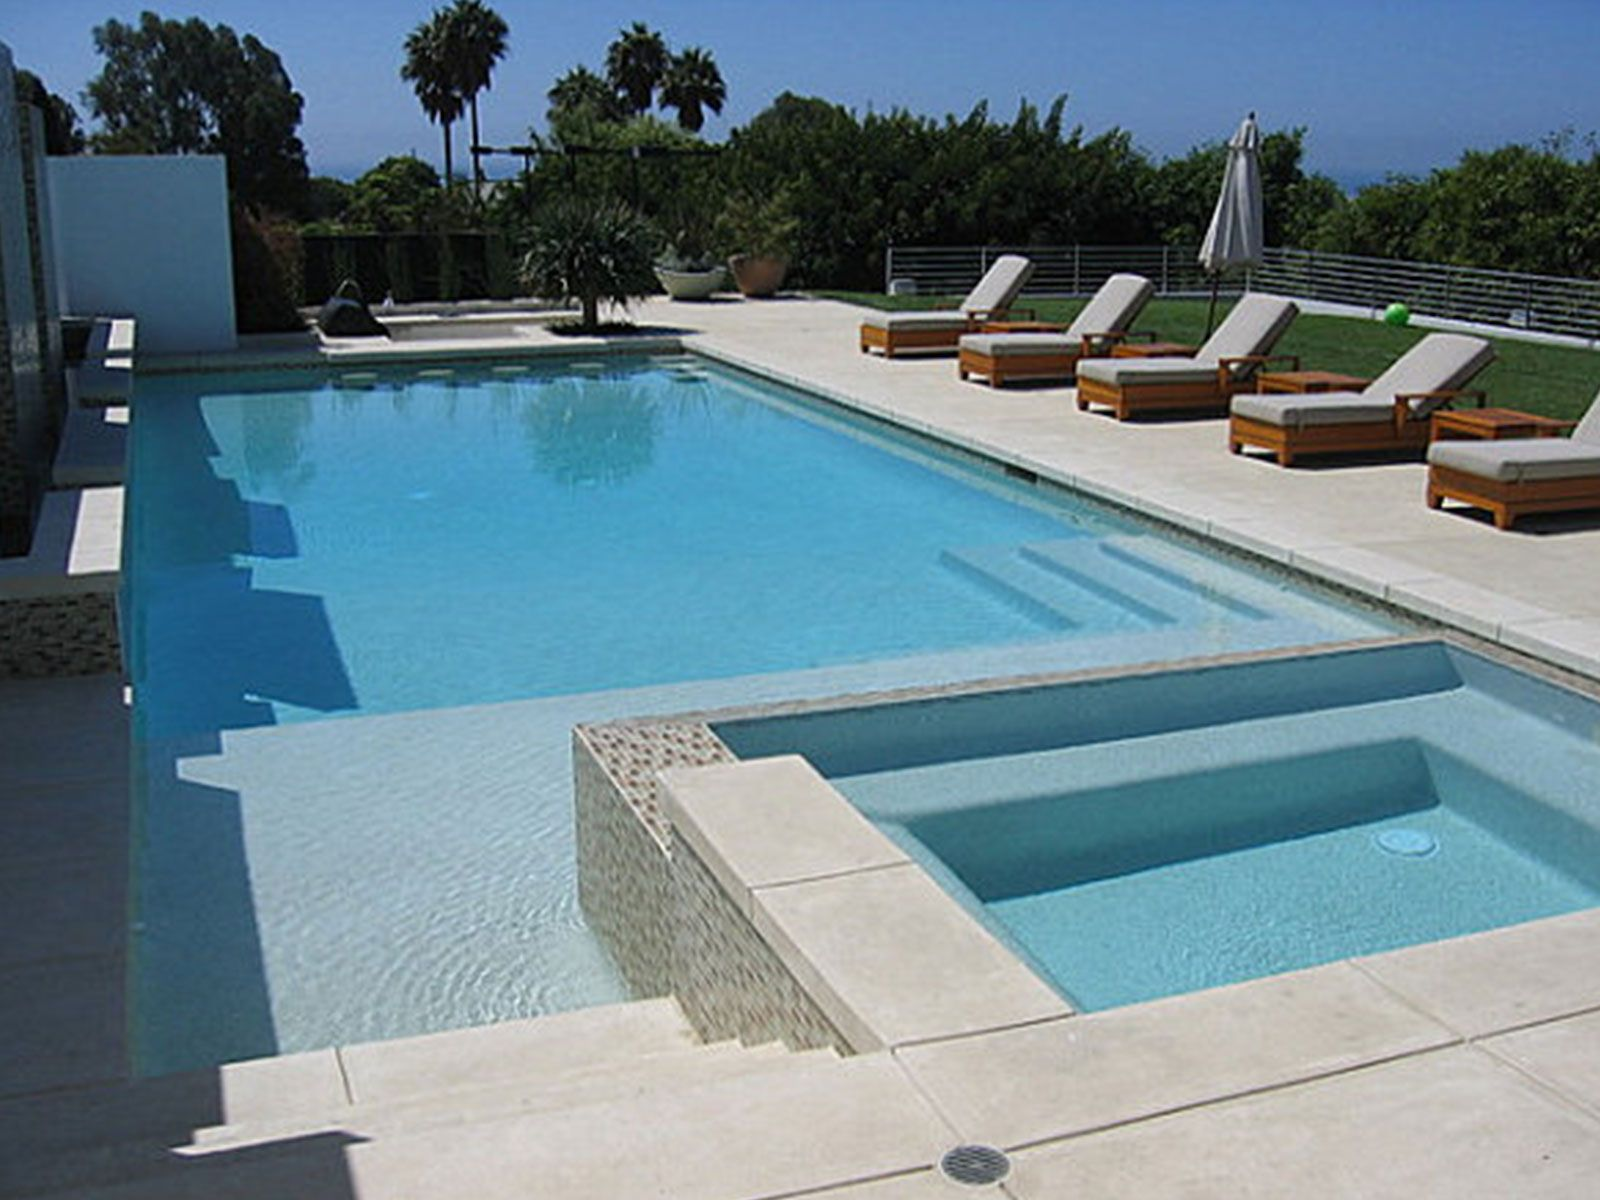 simple swimming pool design image modern creative swimming modern swimming pools and spas - Swimming Pool Designers